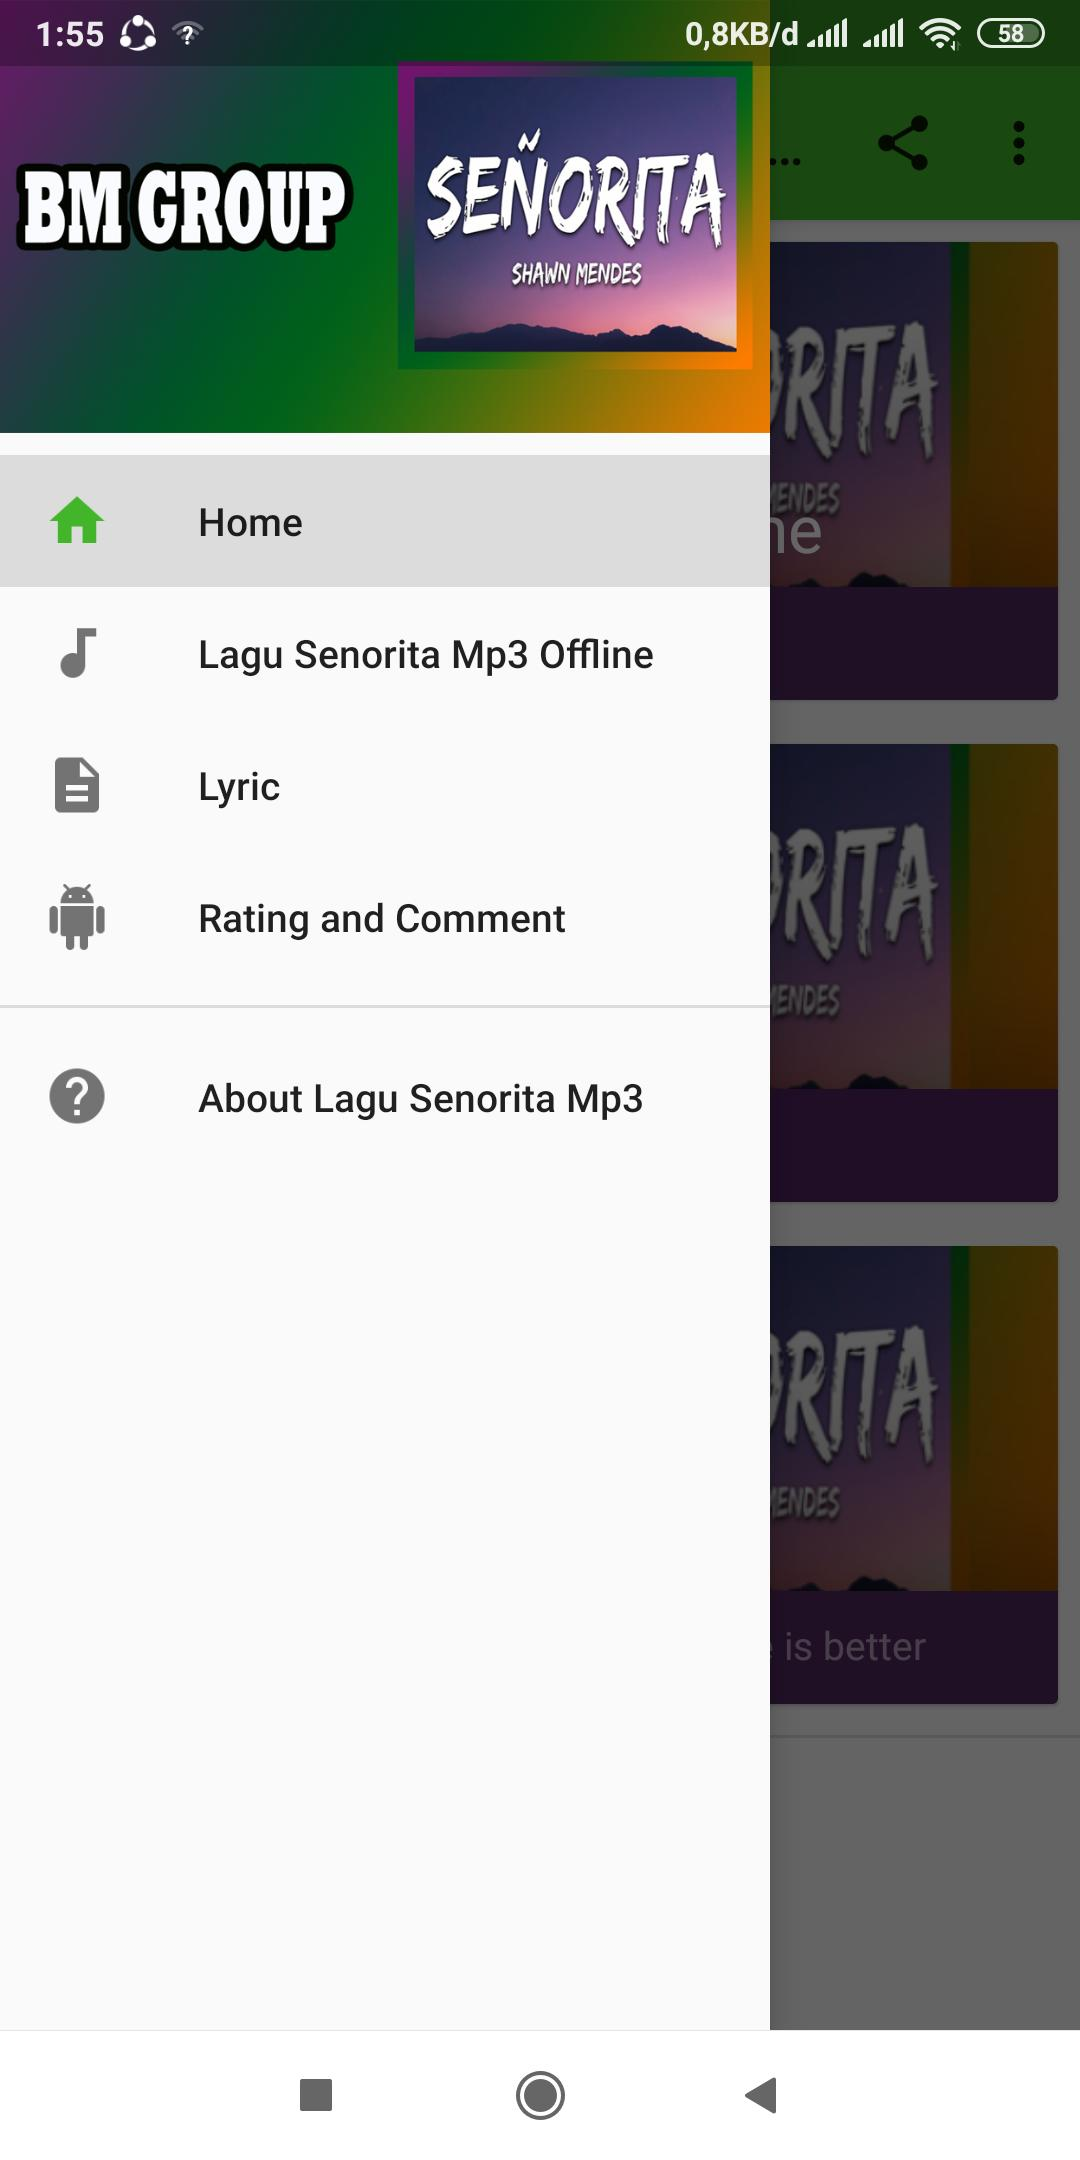 Song Senorita Mp3 Offline for Android - APK Download